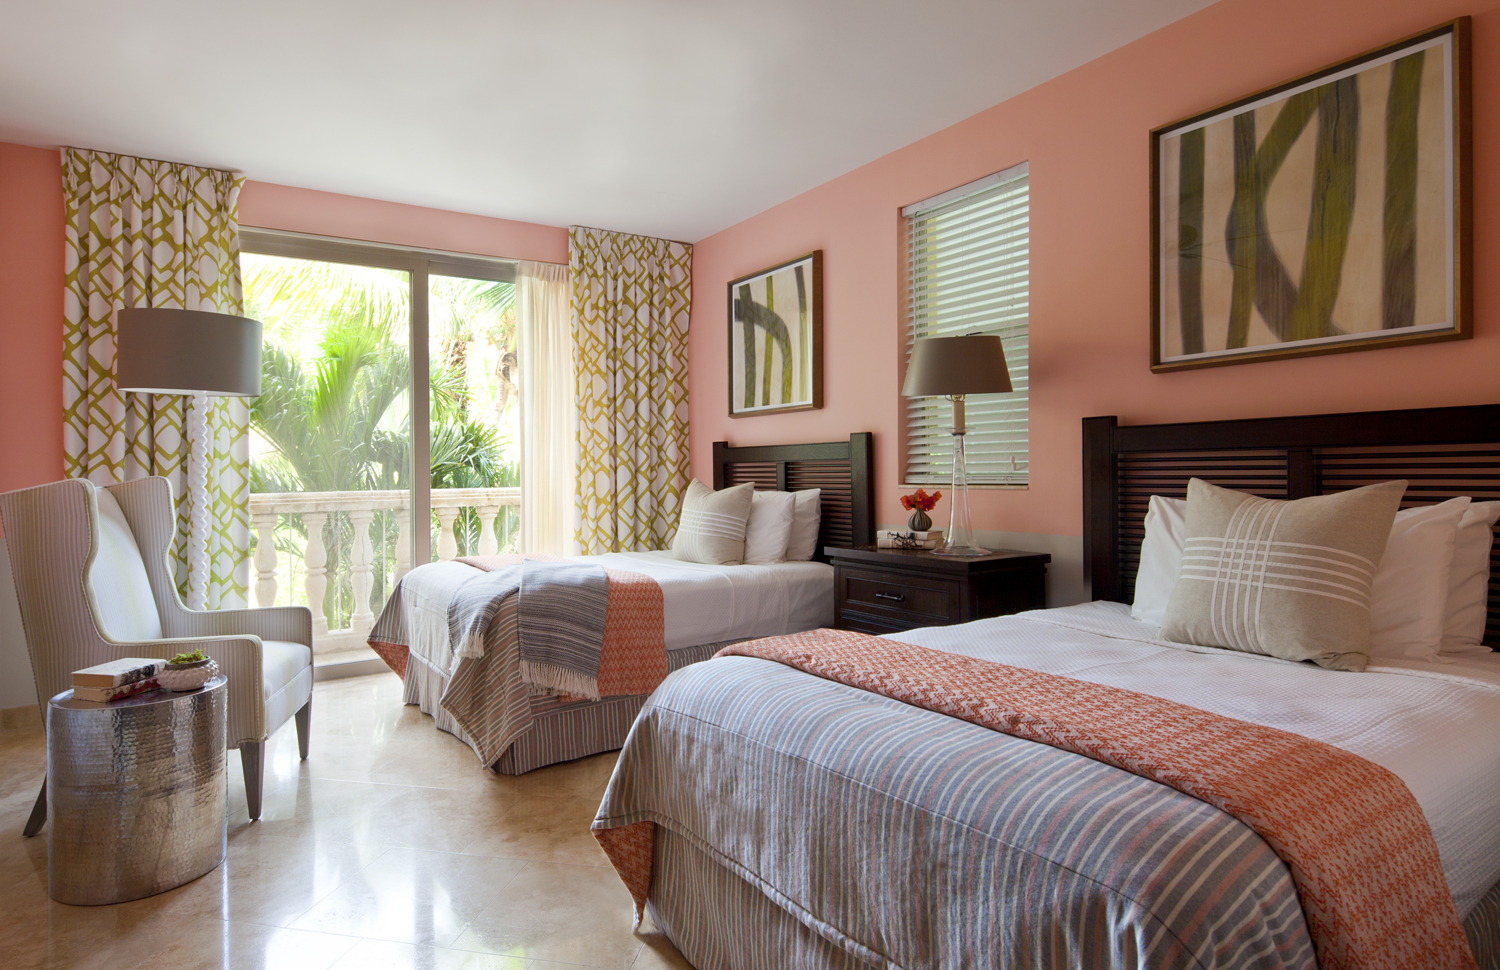 Villas - Luxury Suites - Back Bedroom 1.jpg